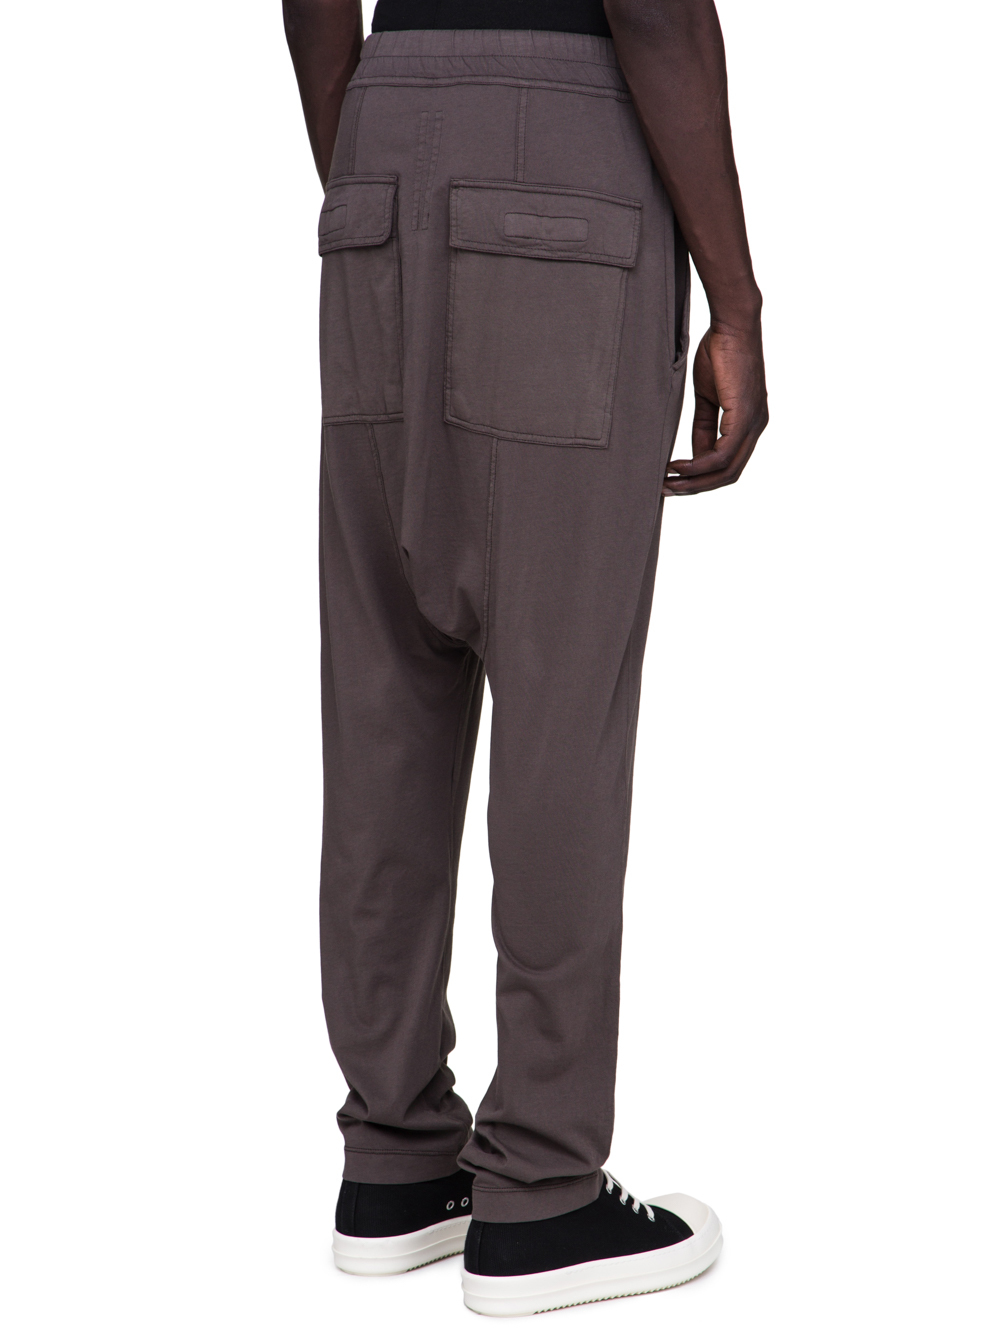 DRKSHDW FW18 SISYPHUS DRAWSTRING LONG PANTS IN DARKDUST GREY